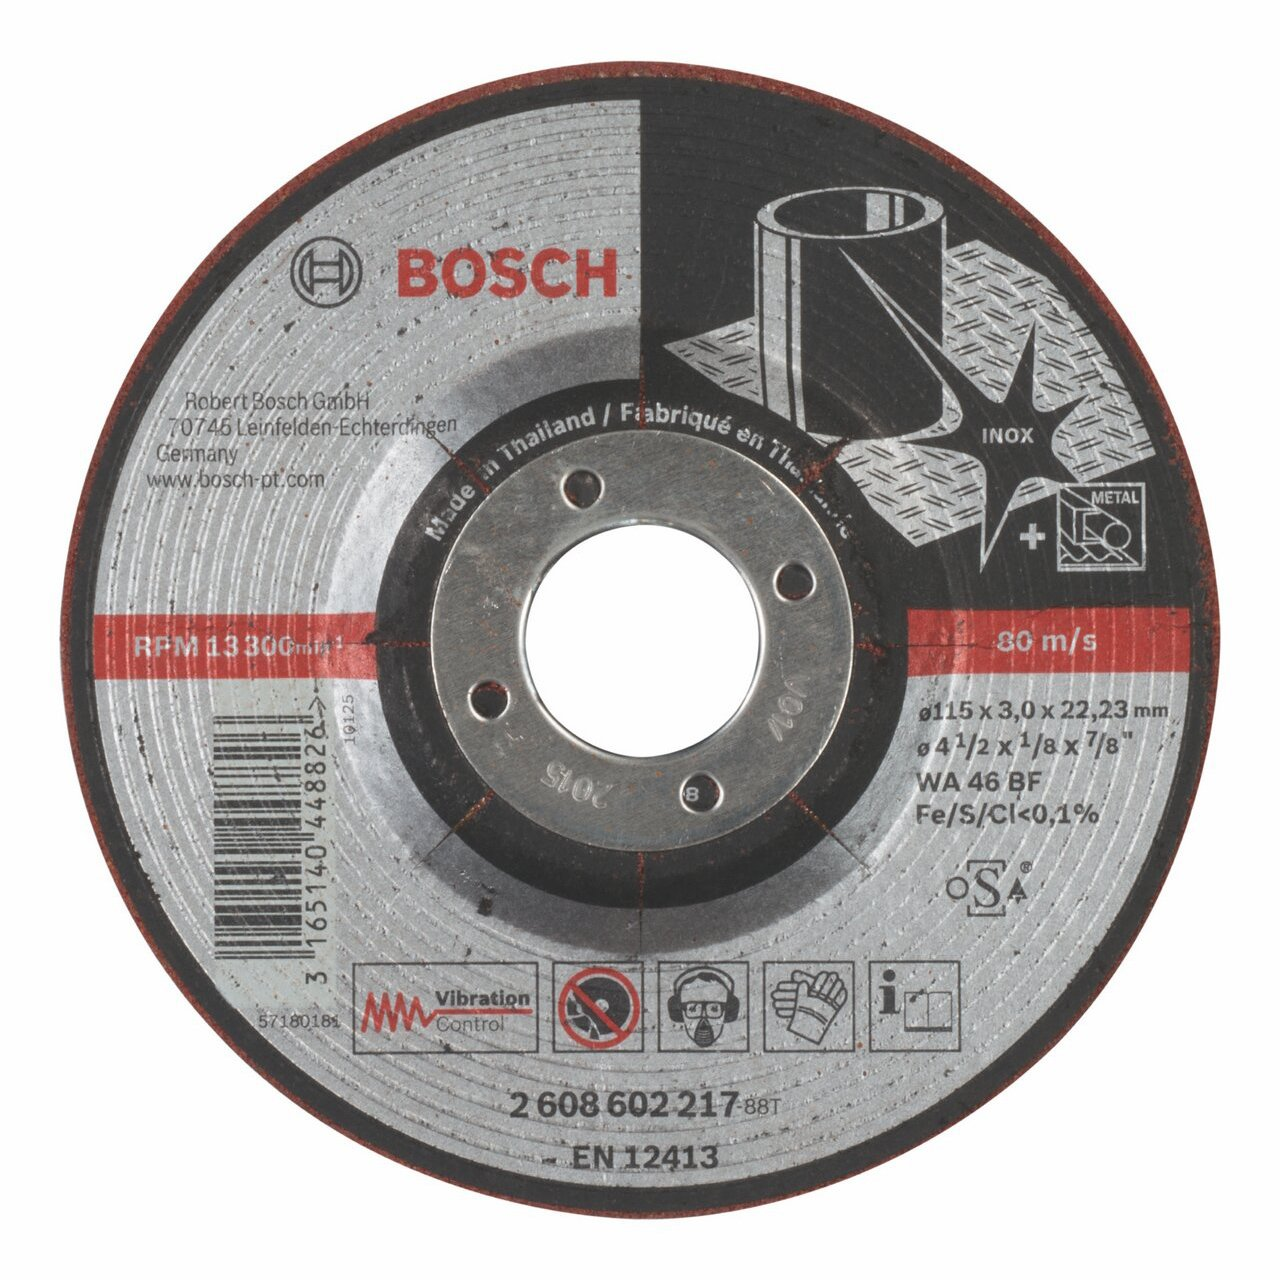 Bosch 2608602217 Grinding DiscWa 46 Bf 4.53inx3mm